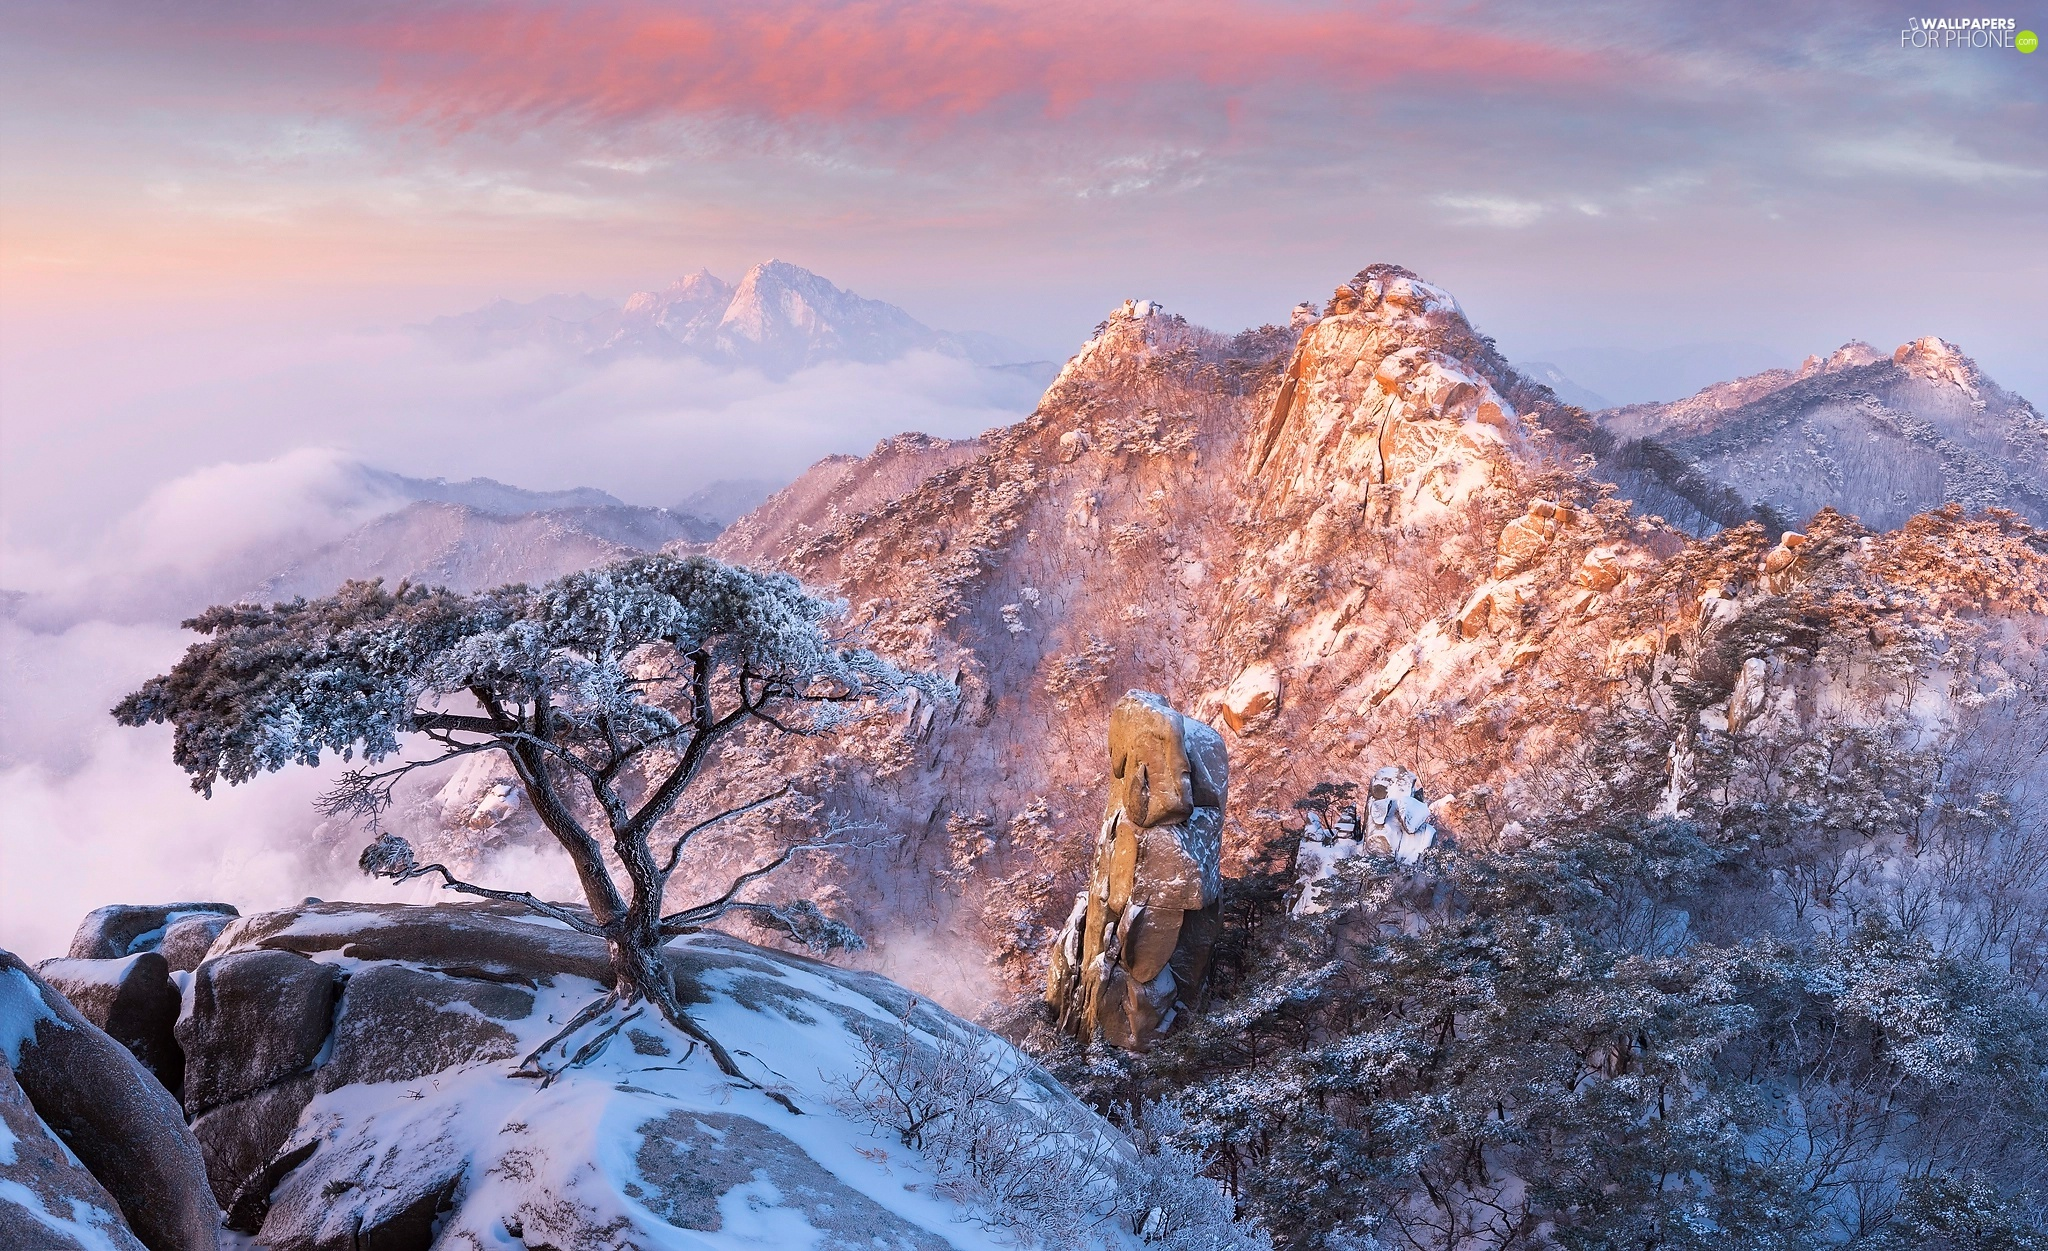 Mountains, South Korea, Snowy, winter, Stones, pine, viewes, Bukhansan National Park, Gyeonggi-do Province, trees, rocks